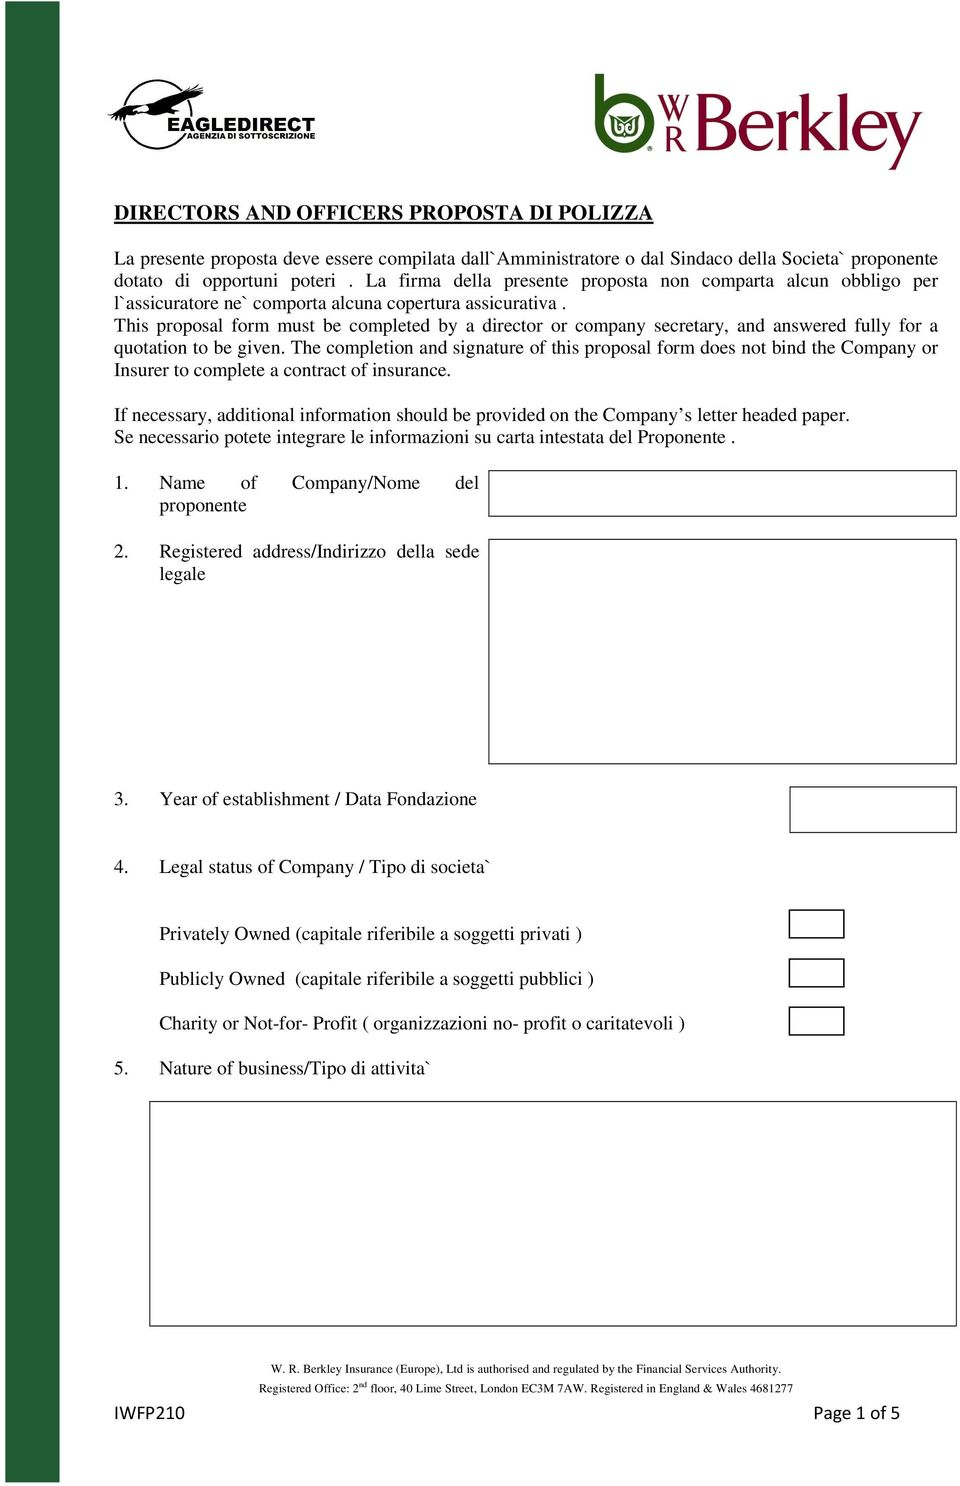 This proposal form must be completed by a director or company secretary, and answered fully for a quotation to be given.